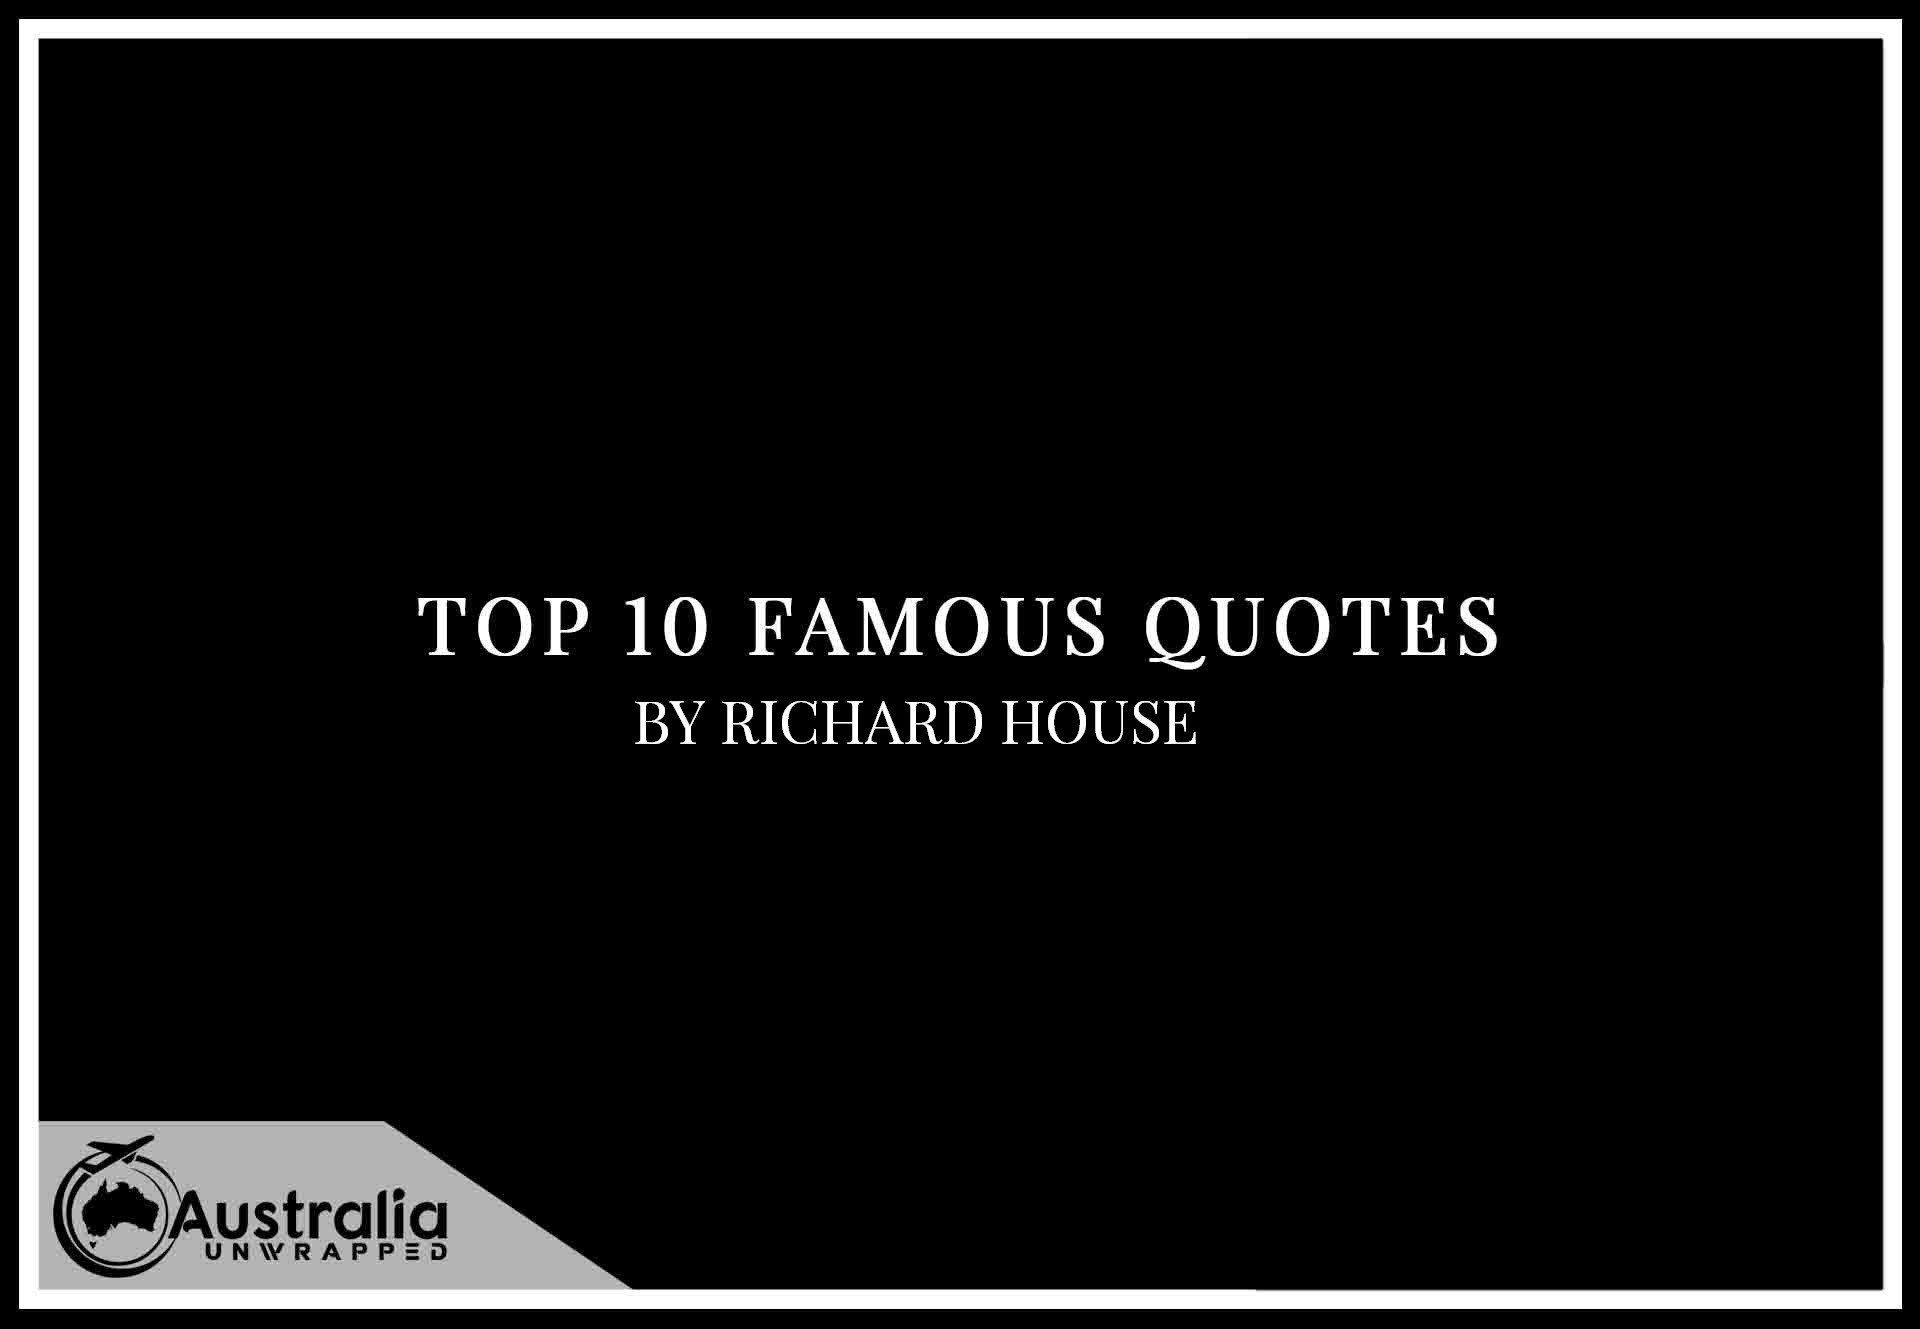 Top 10 Famous Quotes by Author Richard House